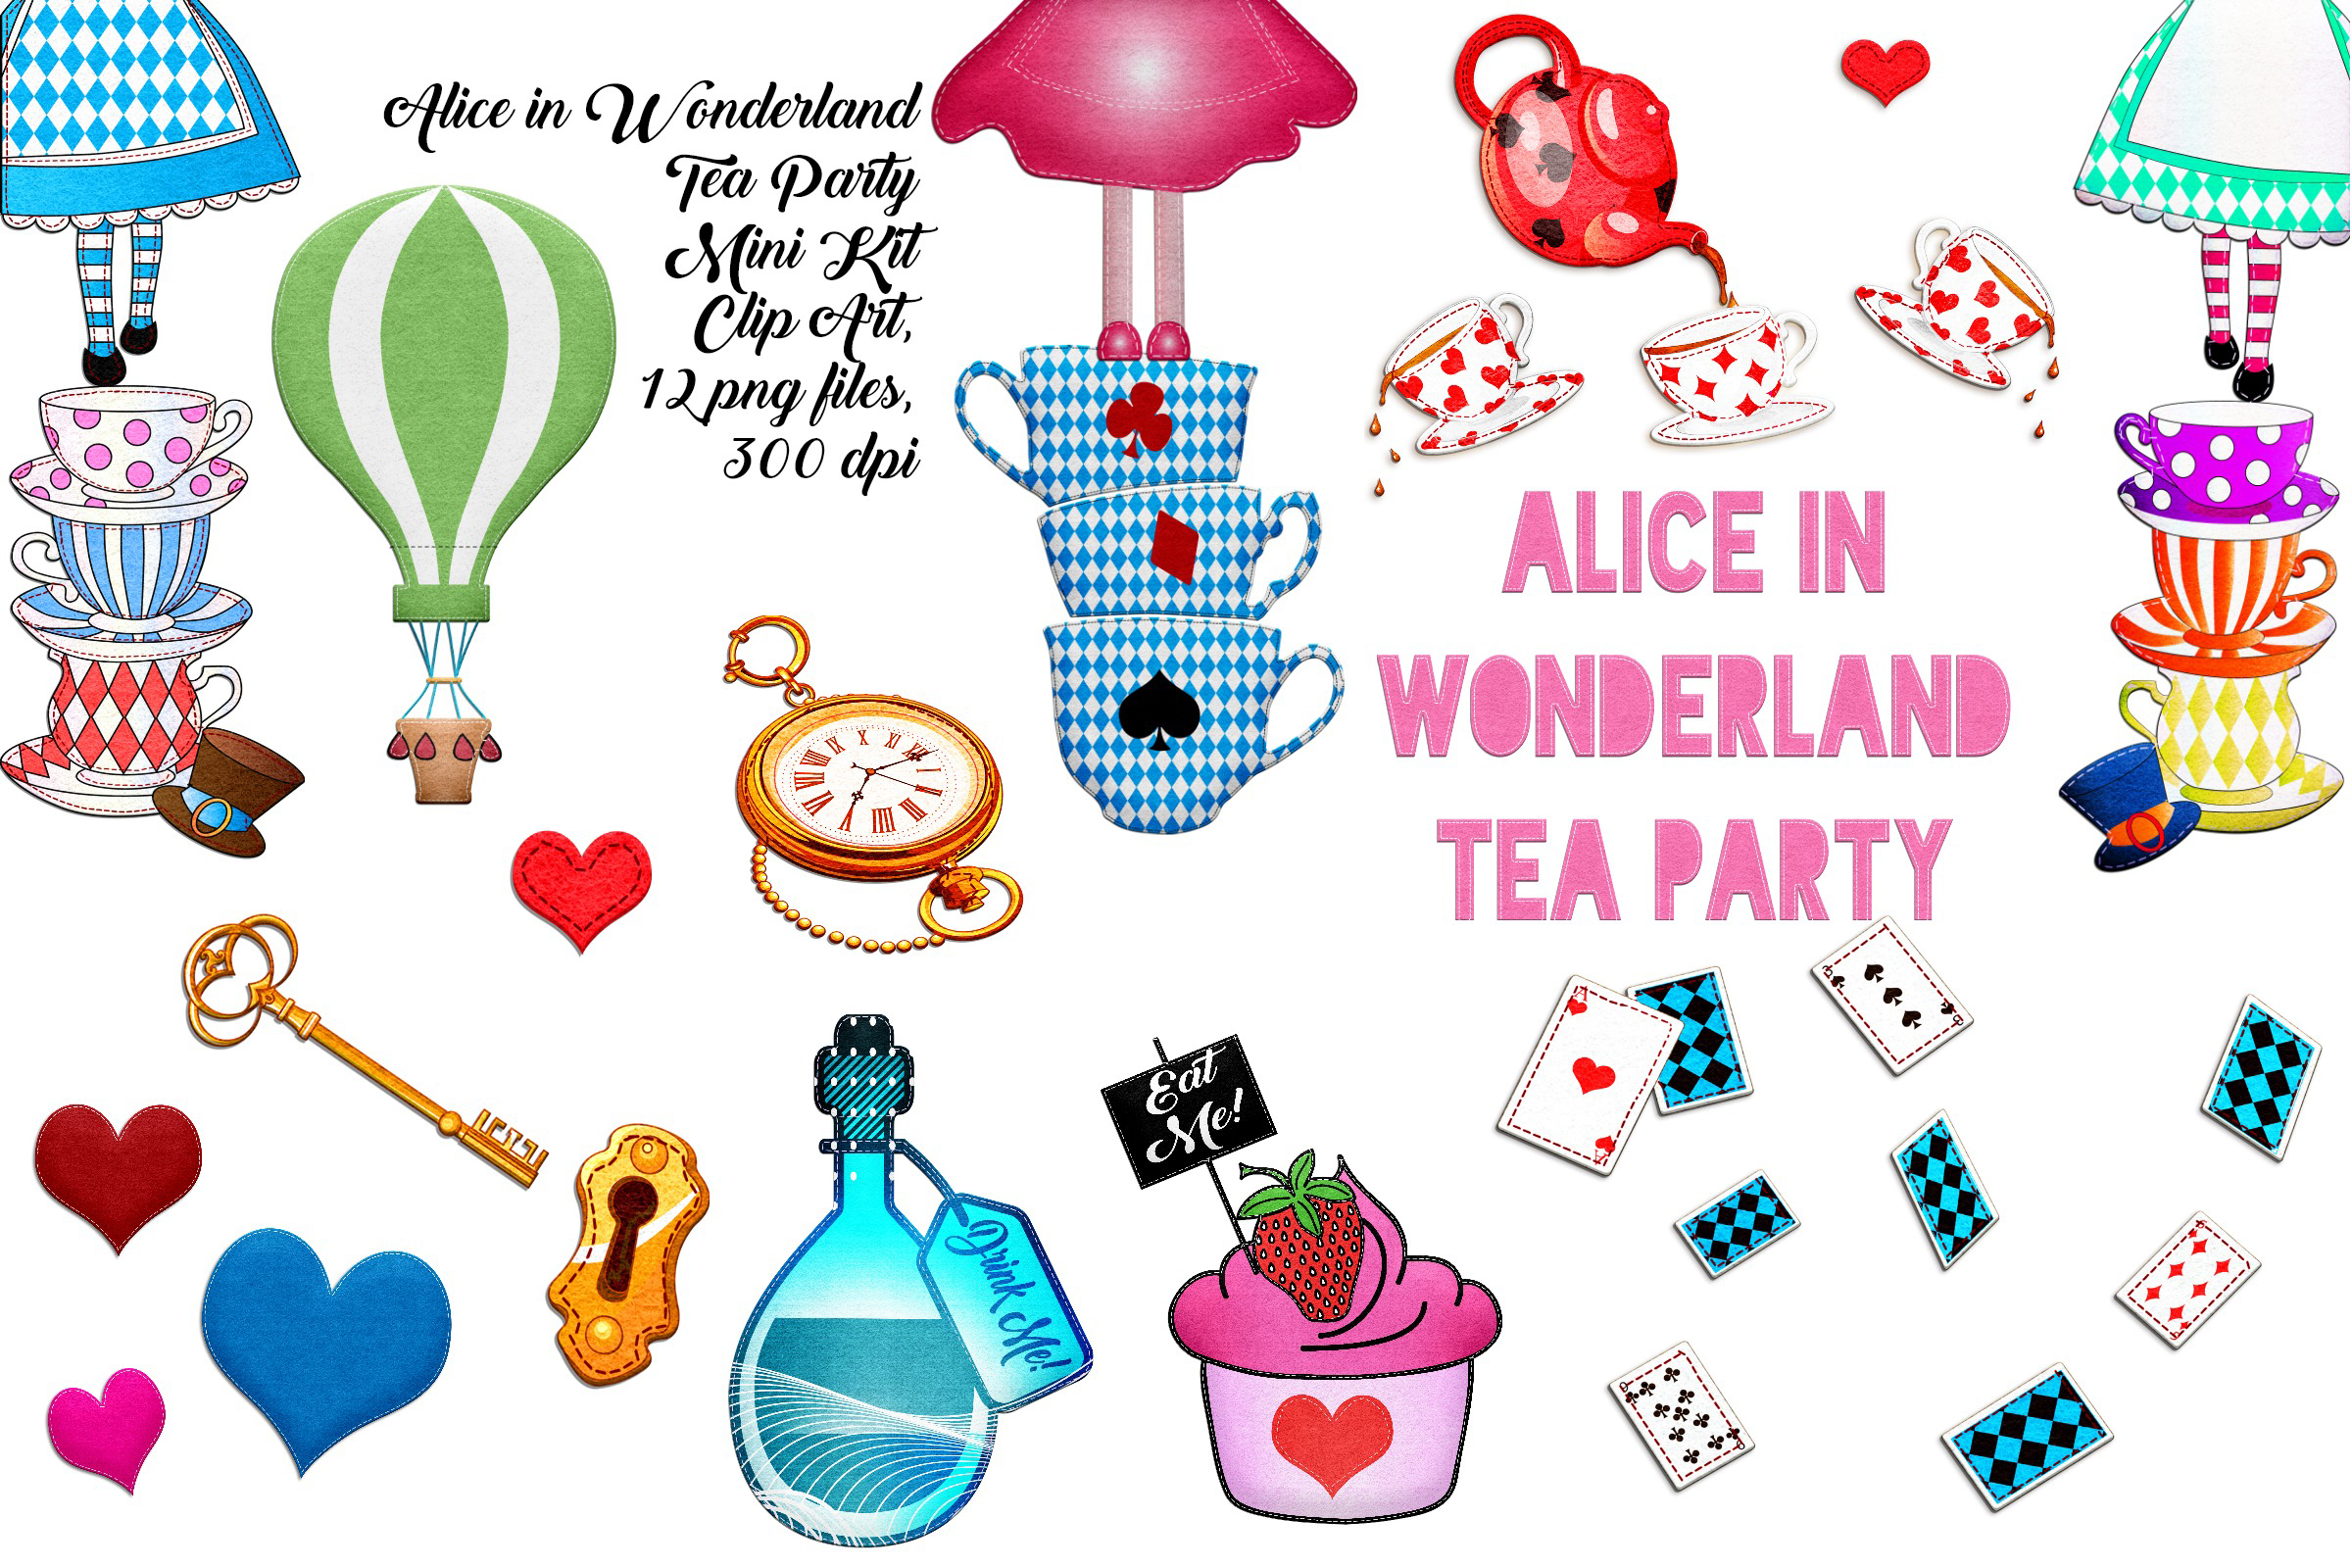 Alice in Wonderland Tea Party Mini Kit Felted Clip Art.